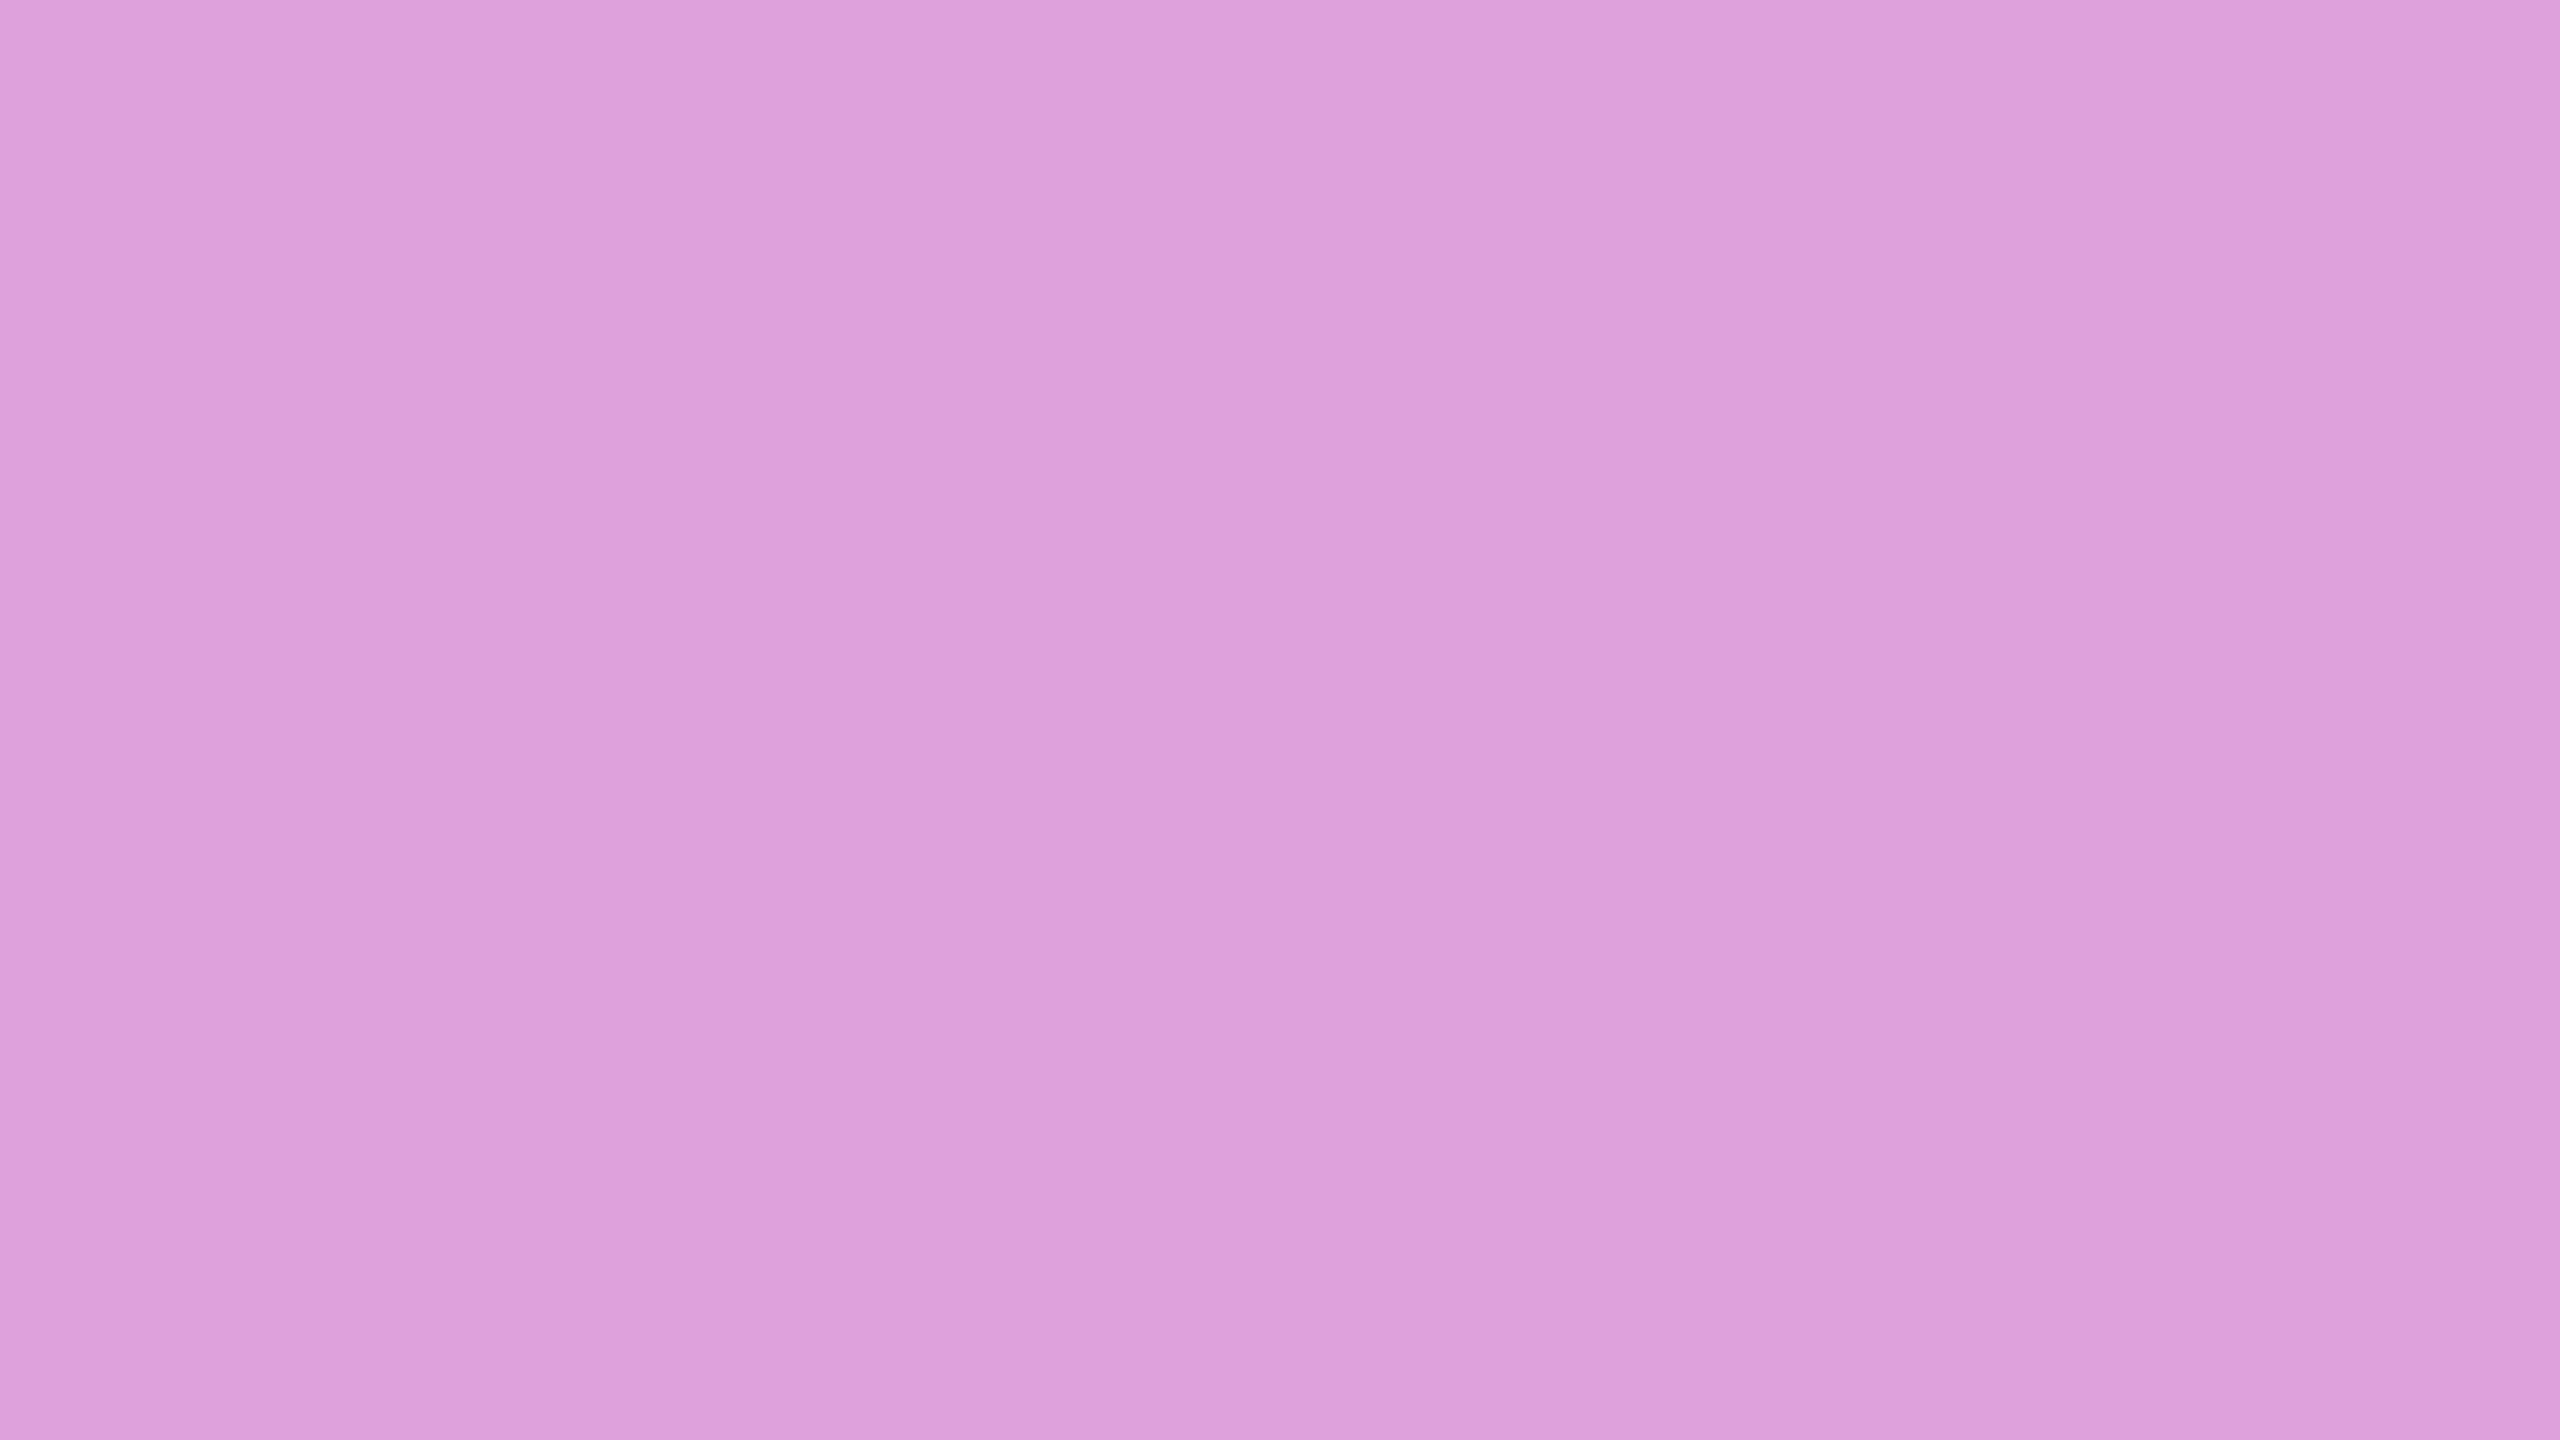 2560x1440 Plum Web Solid Color Background 2560x1440